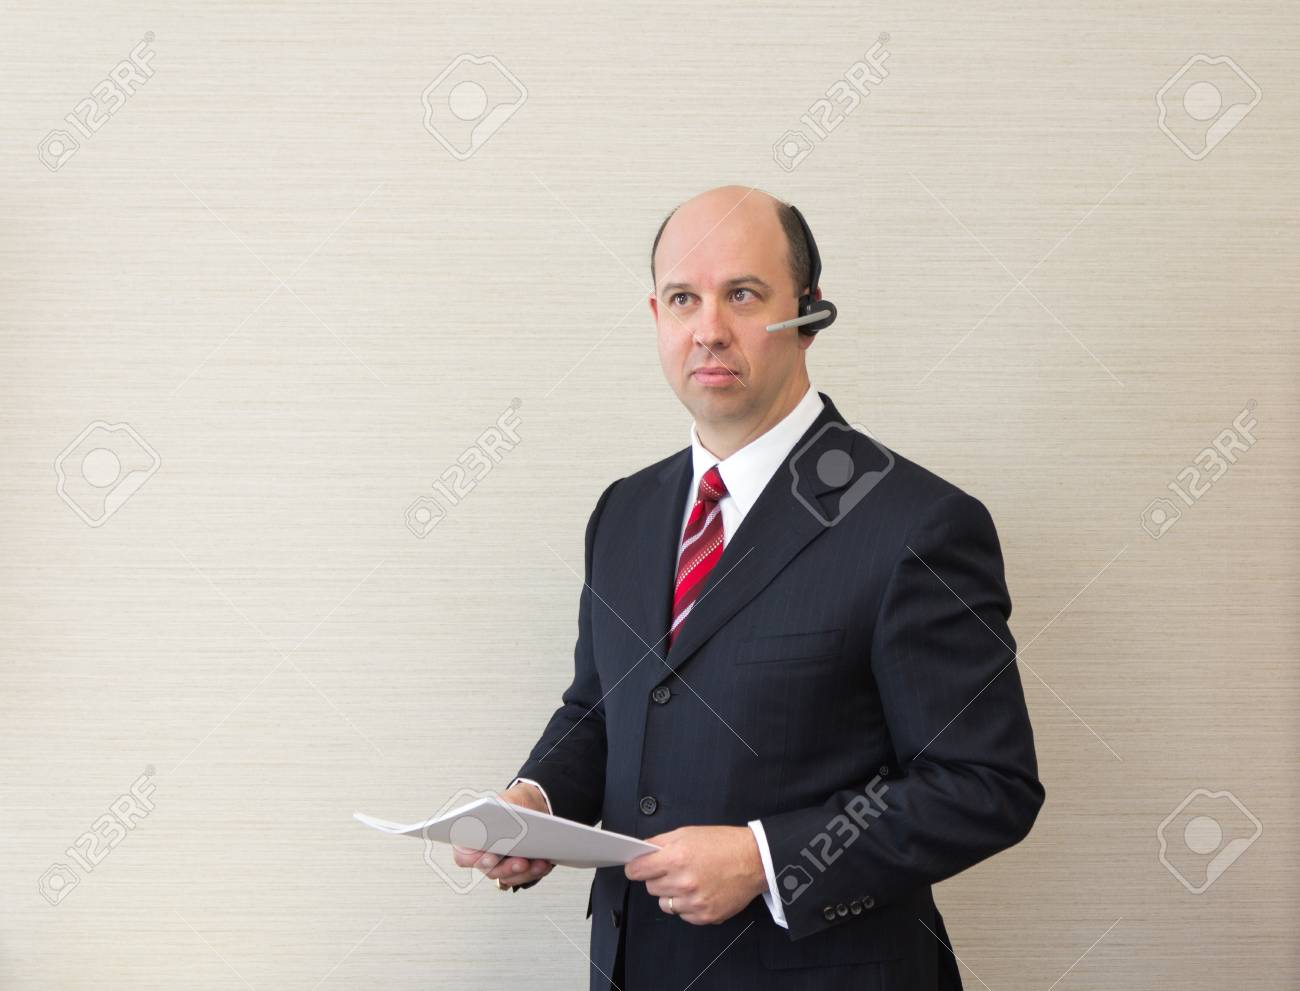 Business man with a handsfree telephone headset holding a document. Stock Photo - 14124178